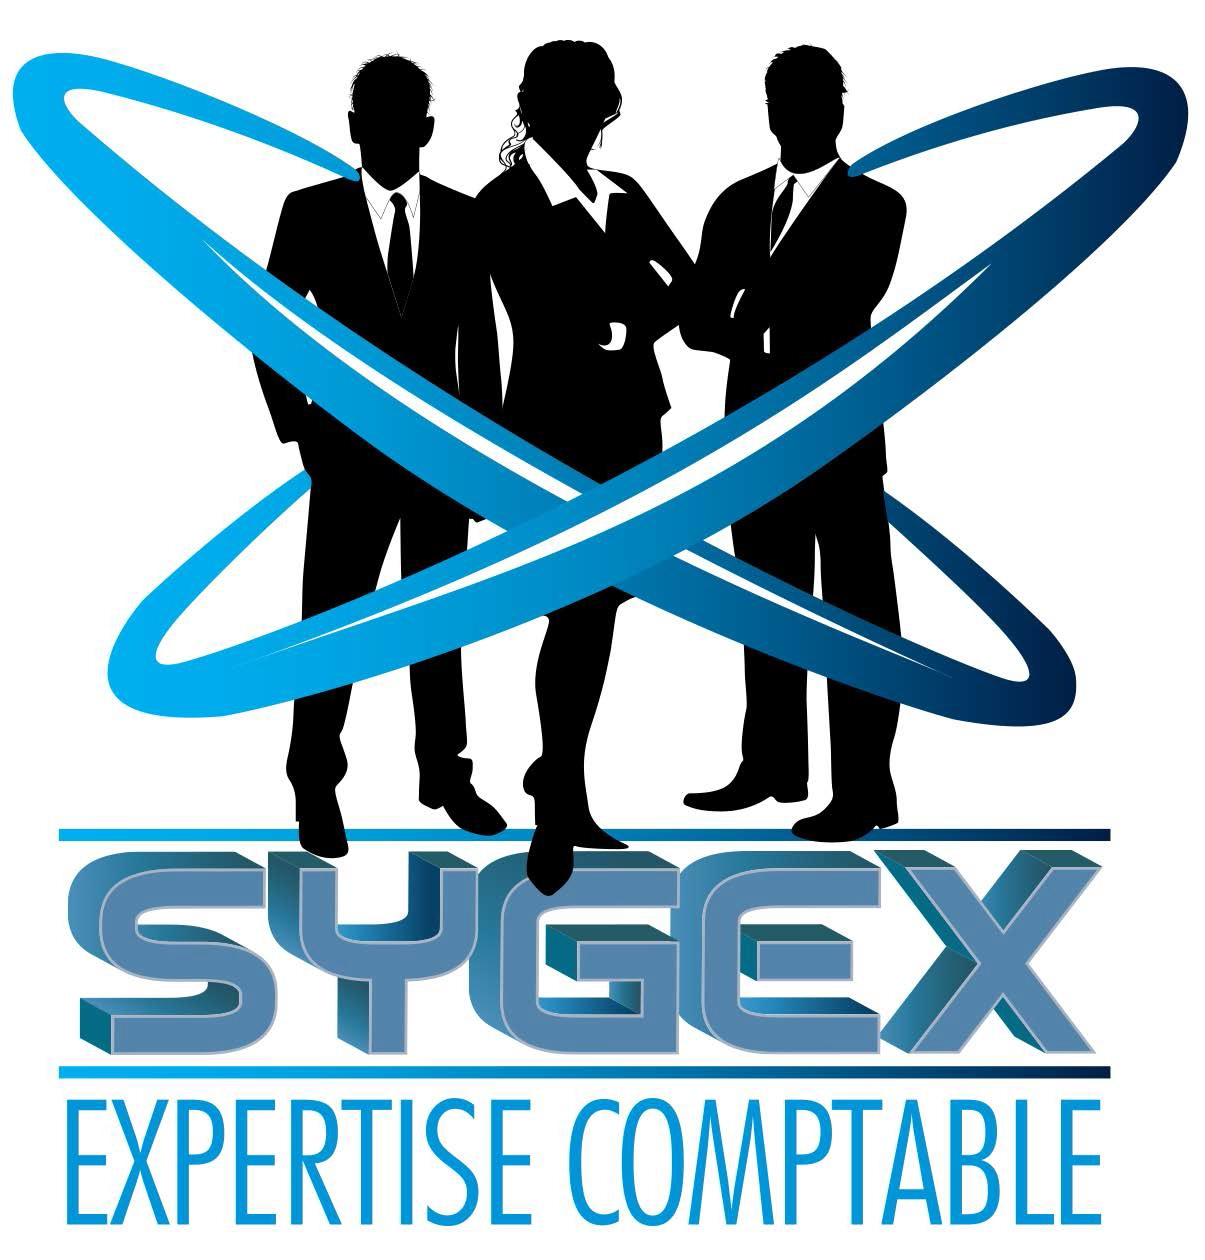 SYGEX EXPERTISE COMPTABLE - QUIMPER - MORLAIX